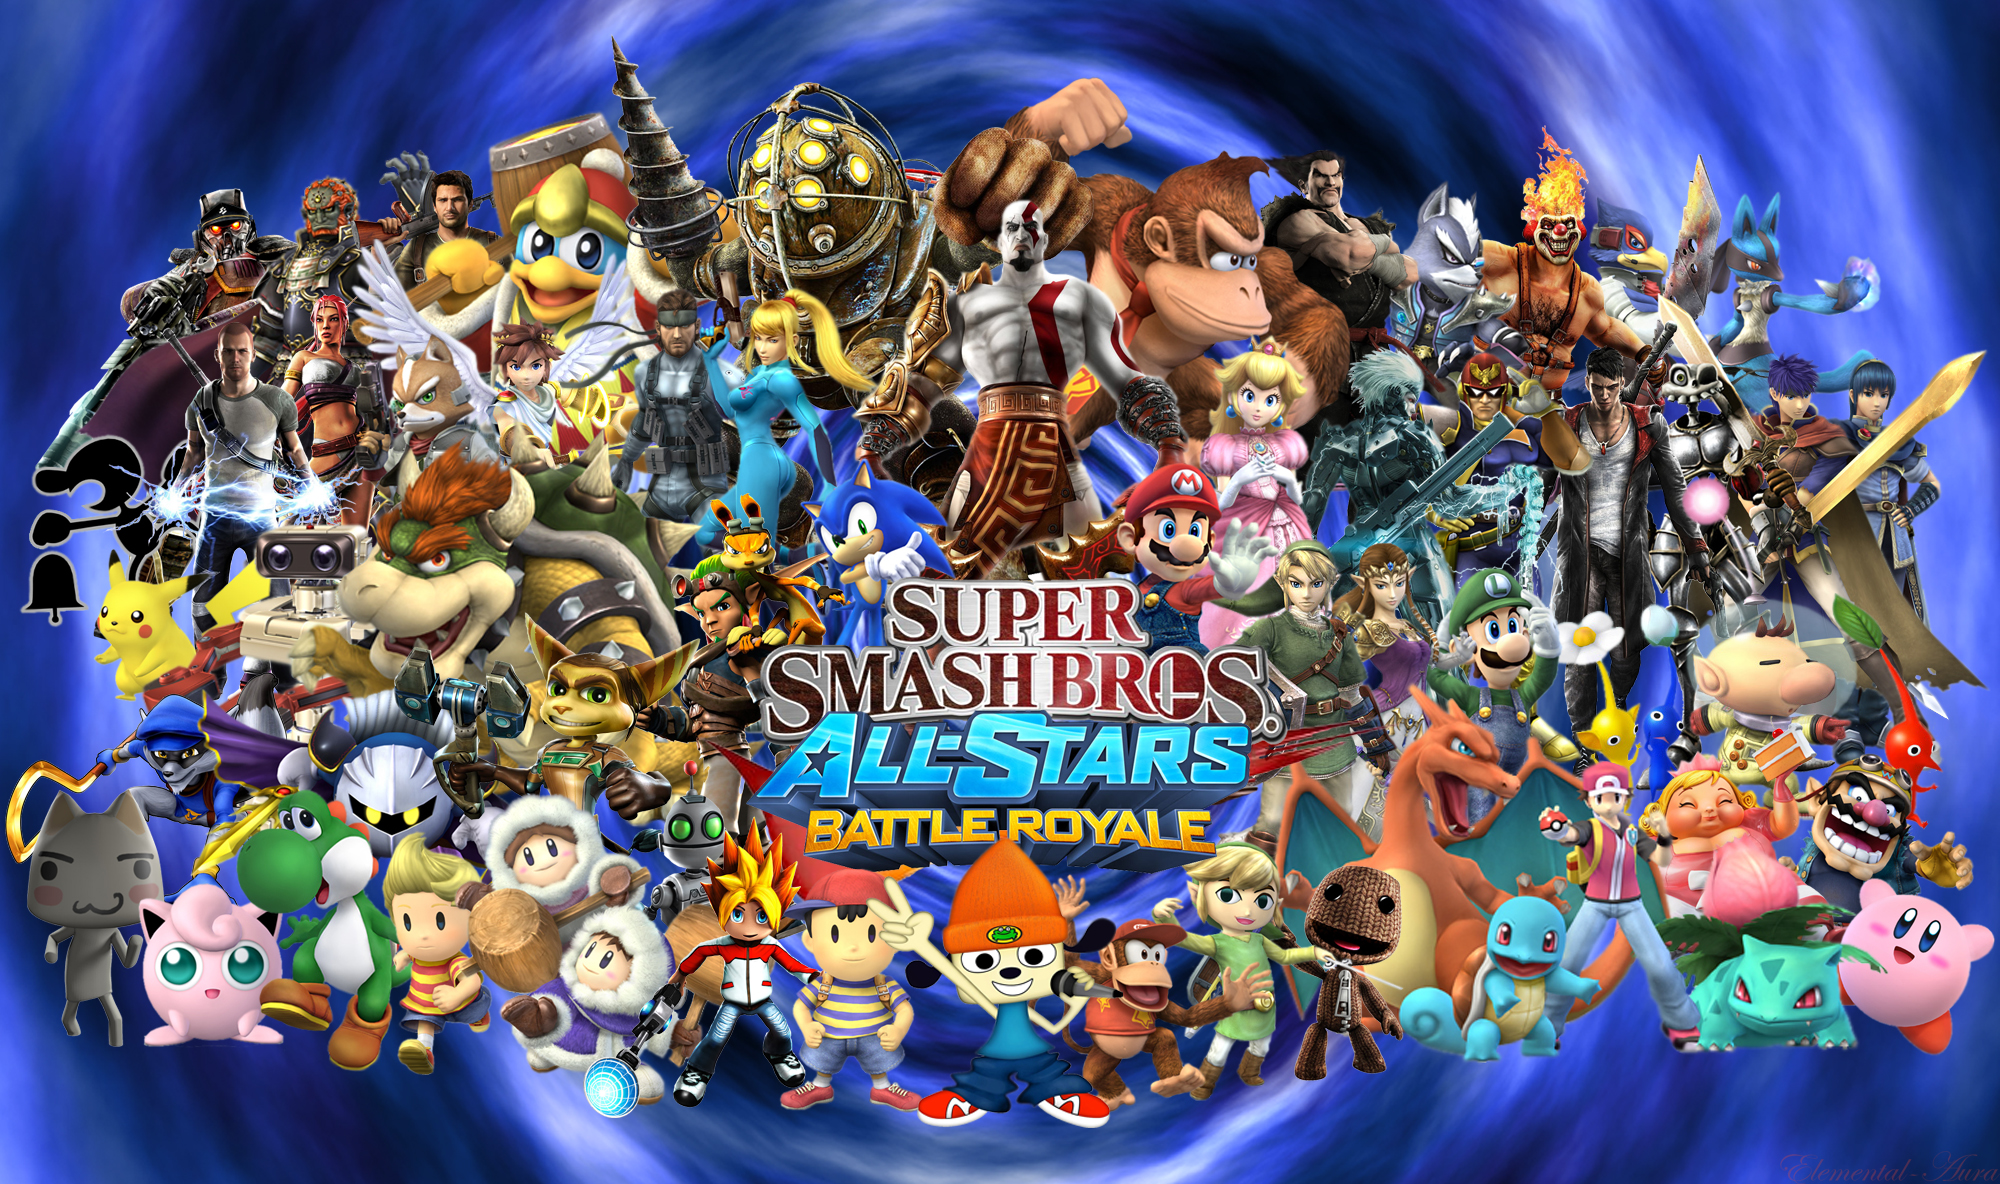 Super-Smash-Bros-All-Stars-Battle-Royal-playstation-all-stars-battle-royale-32729473-2000-1184